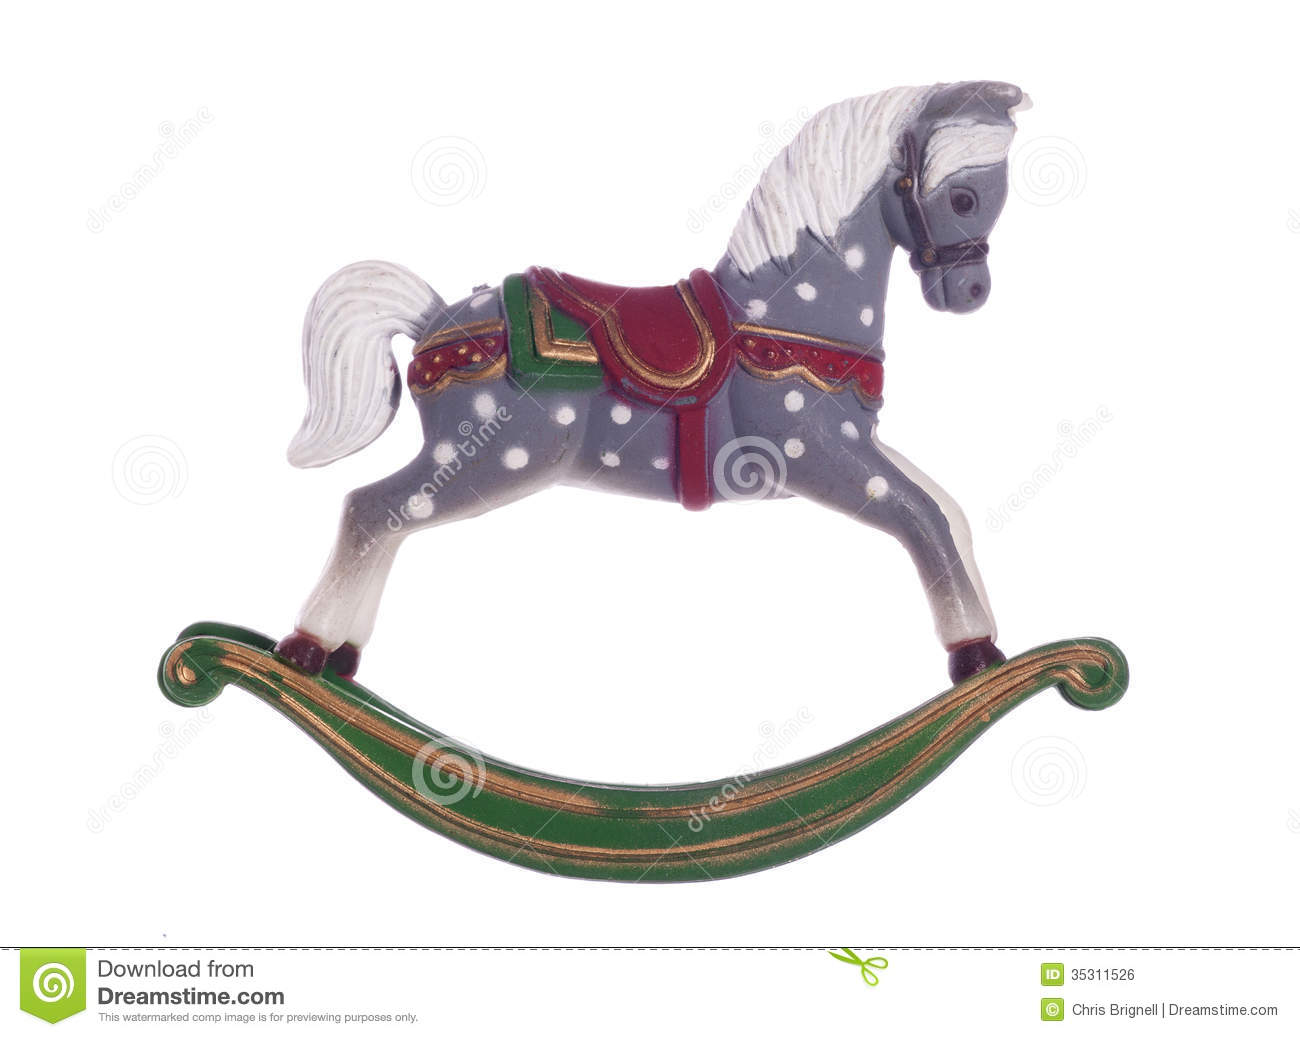 Christmas Horse Decorations.Vintage Rocking Horse Christmas Decoration Stock Photo